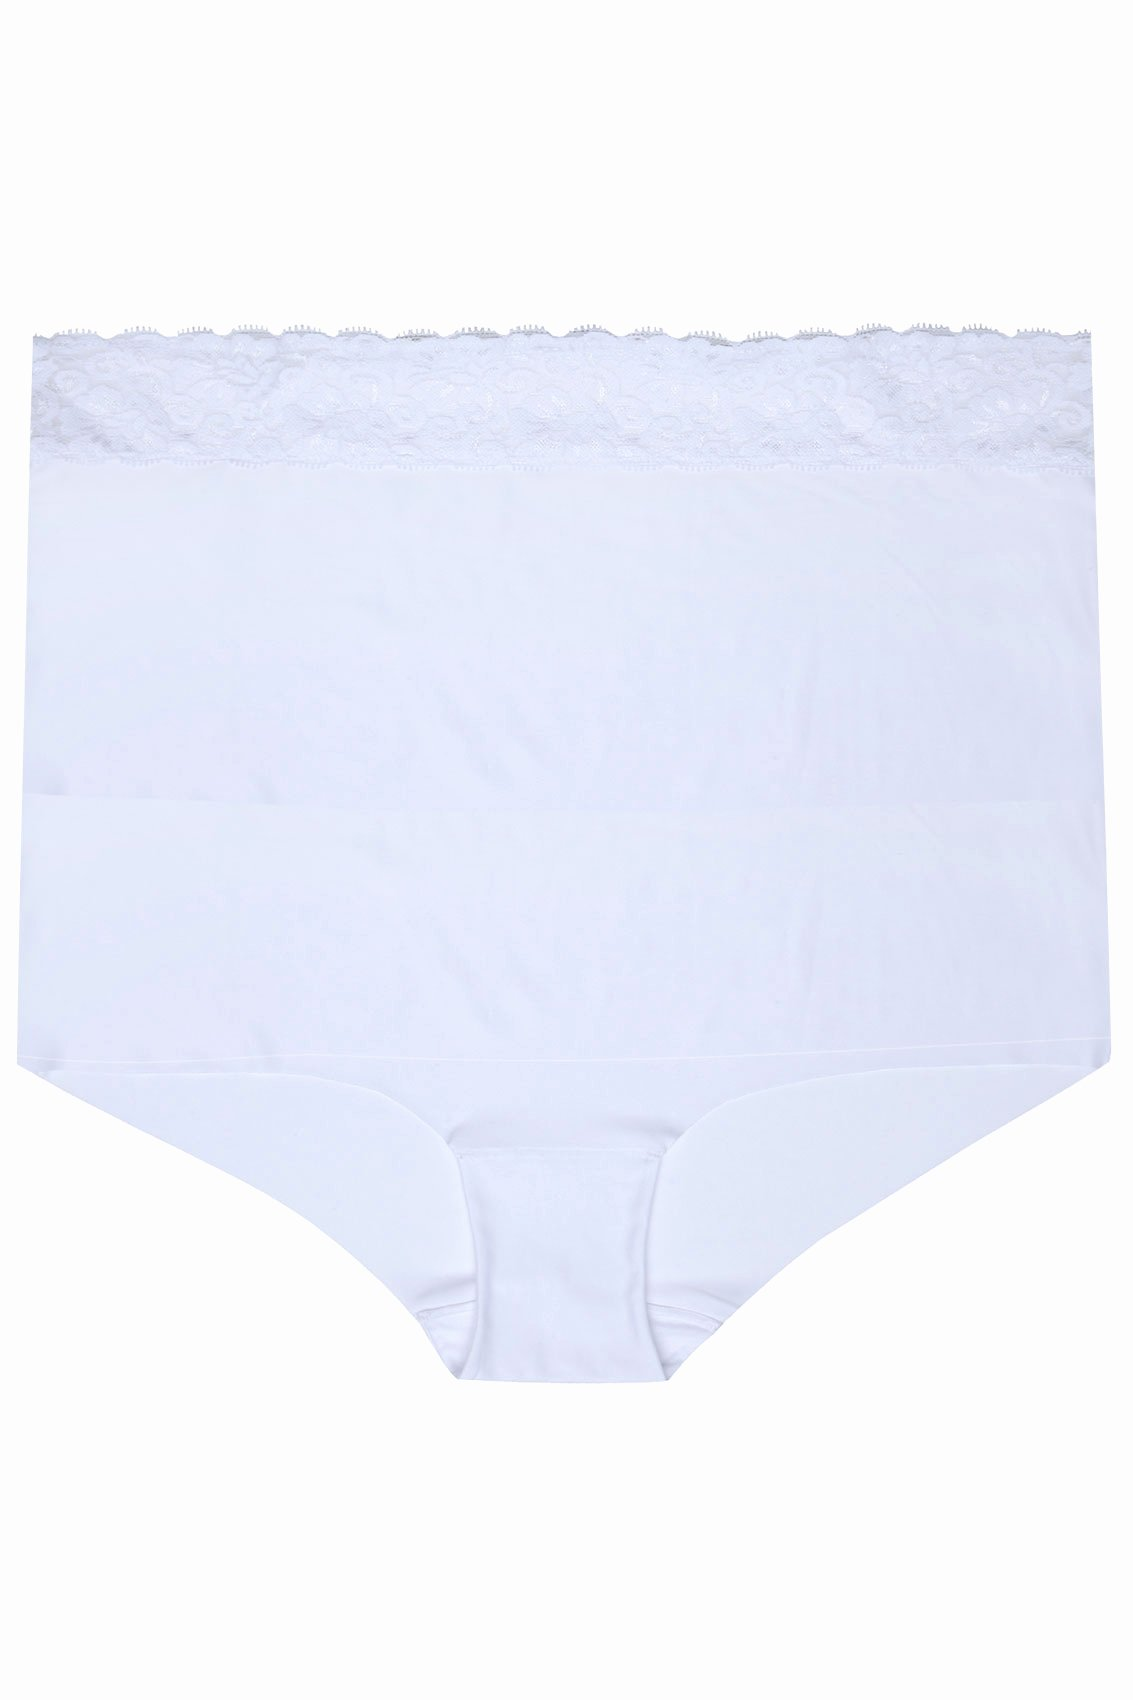 No Return Policy Template Fresh White No Vpl Brief with Lace Waist Trim Plus Sizes 16 to 32